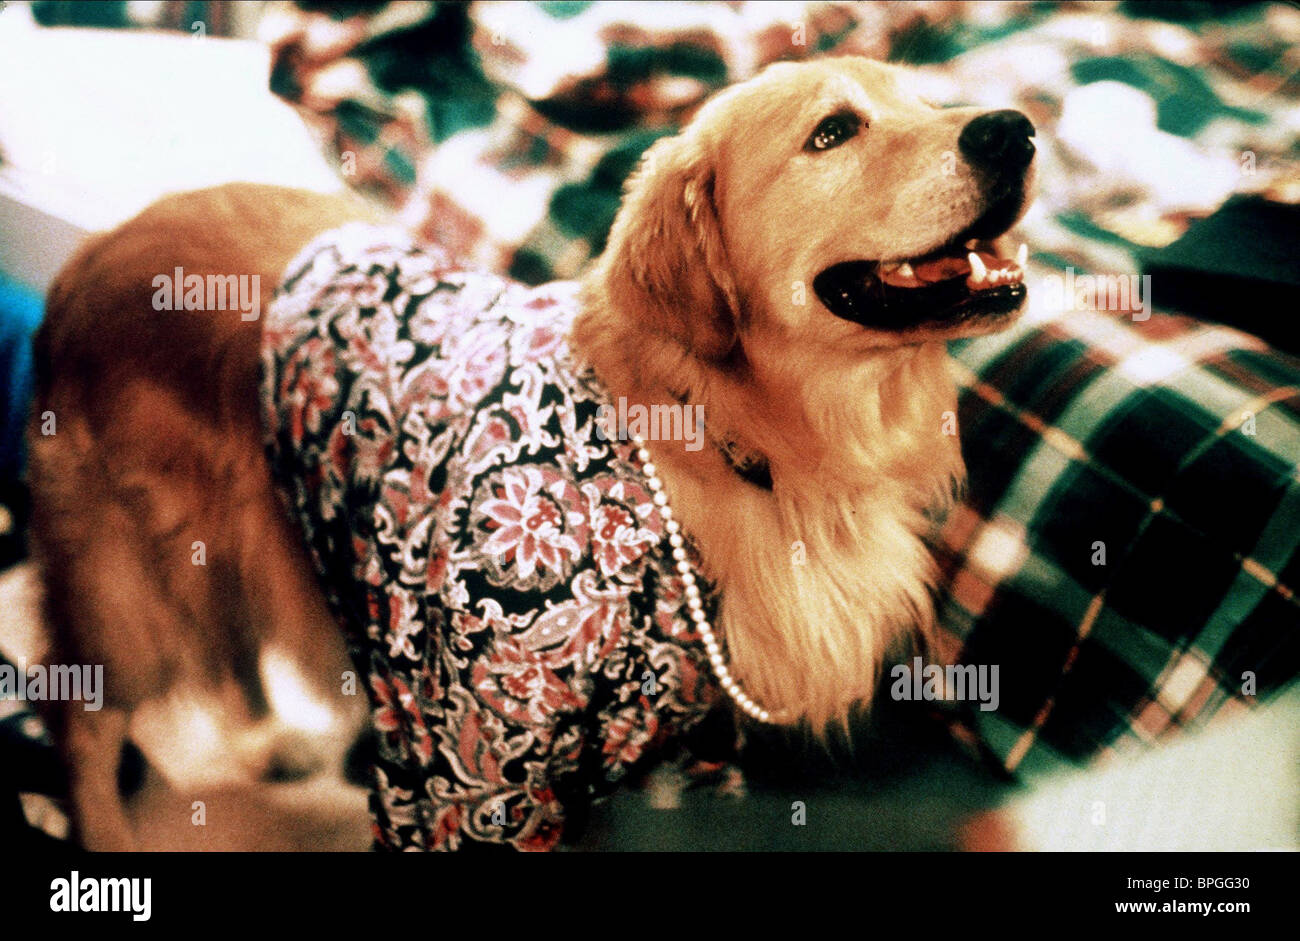 BUDDY AIR BUD: GOLDEN RECEIVER; AIR BUD 2 (1998) - Stock Image